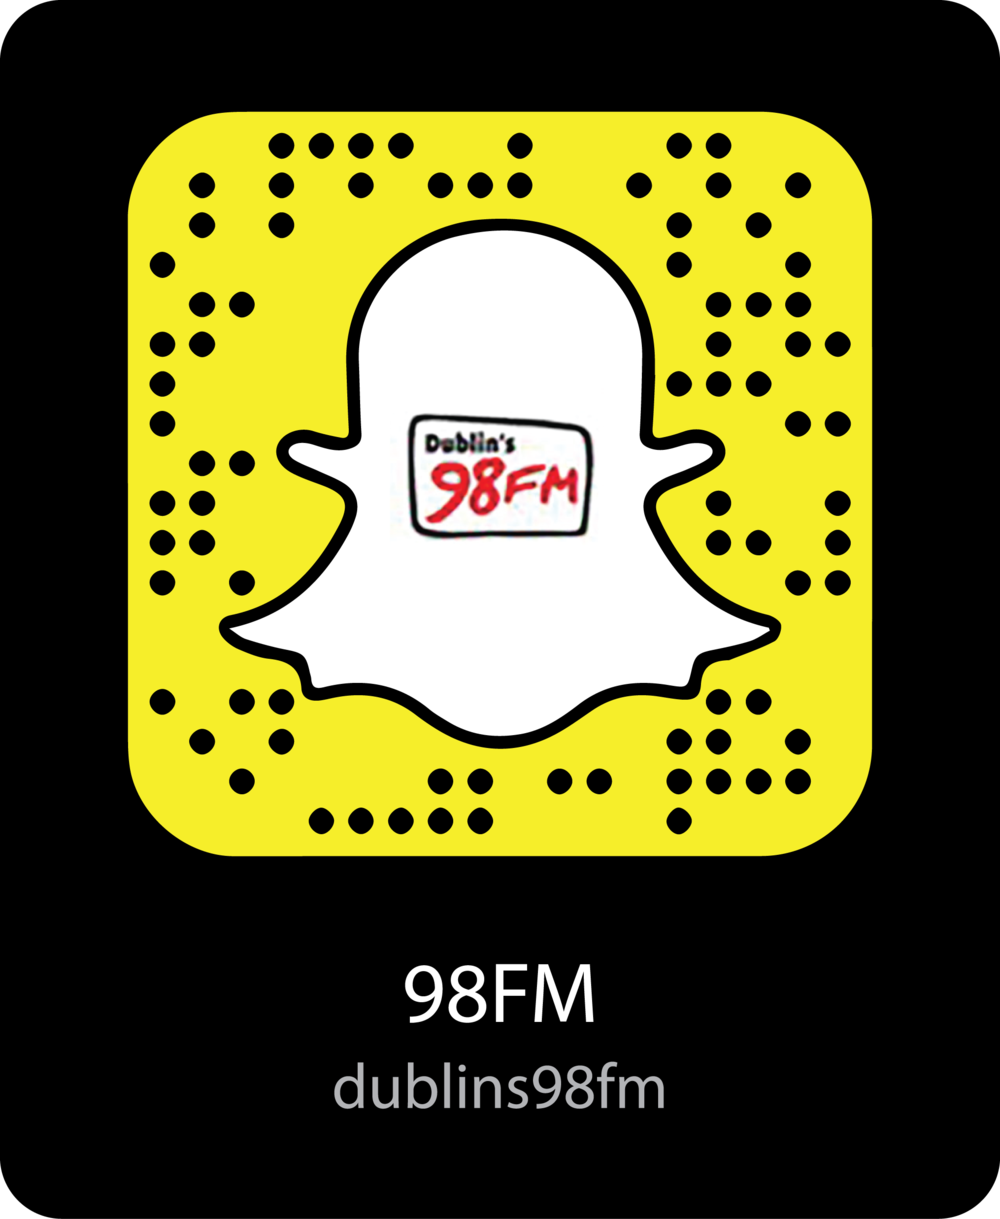 dublins98fm-snapchat-snapcode.png